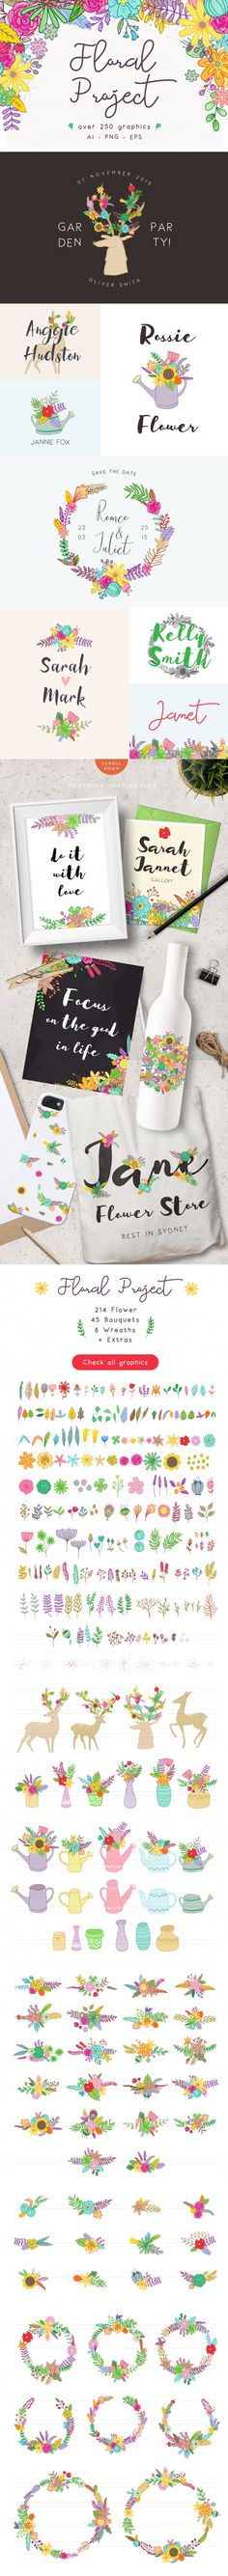 Floral Project by vuuuds  https://creativemarket.com/vuuuds/417808-Floral-Project-50-off  flower, diy, vector, floral,	illustration, poster,	card, greeting,	wedding,	clip art, garden,	popular, botanical, decoration, logo,	pattern